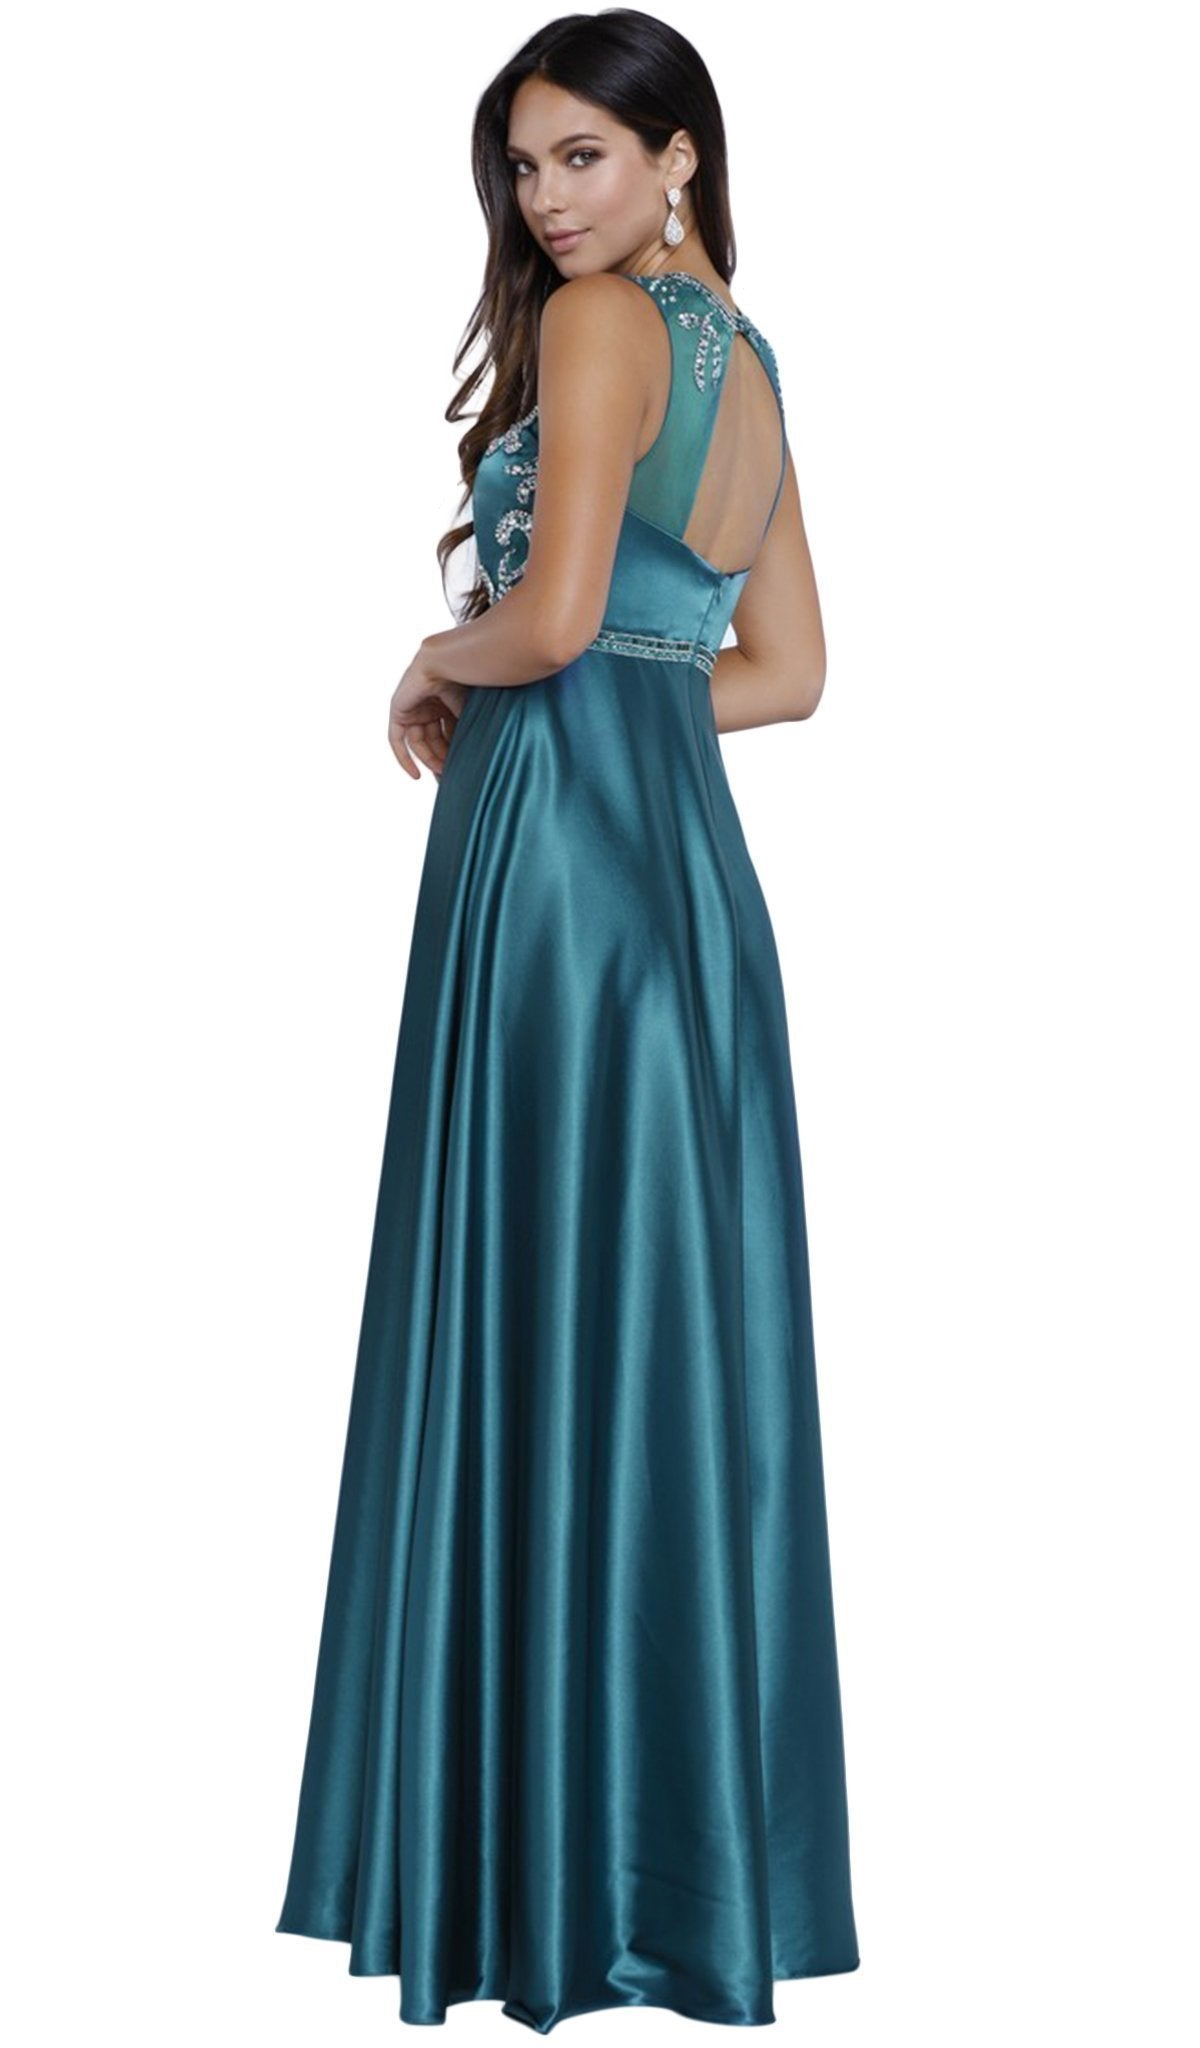 Nox Anabel - Embellished Satin A-line Dress 8188SC